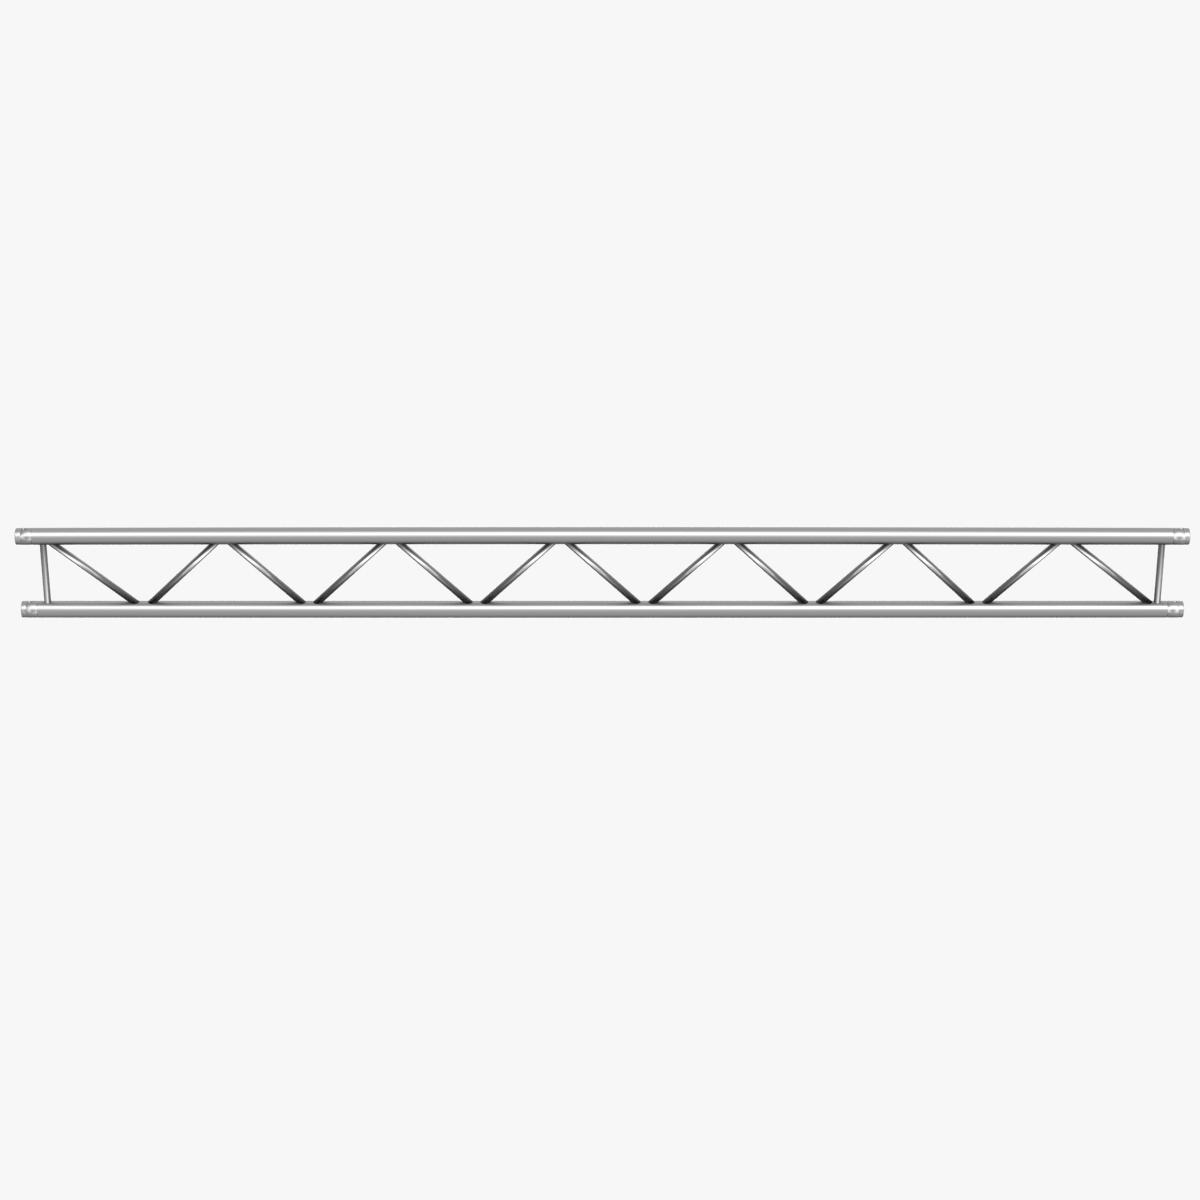 beam trusses (collection 24 modular pieces) 3d model 3ds max dxf fbx bmp blend c4d dae other obj 268730